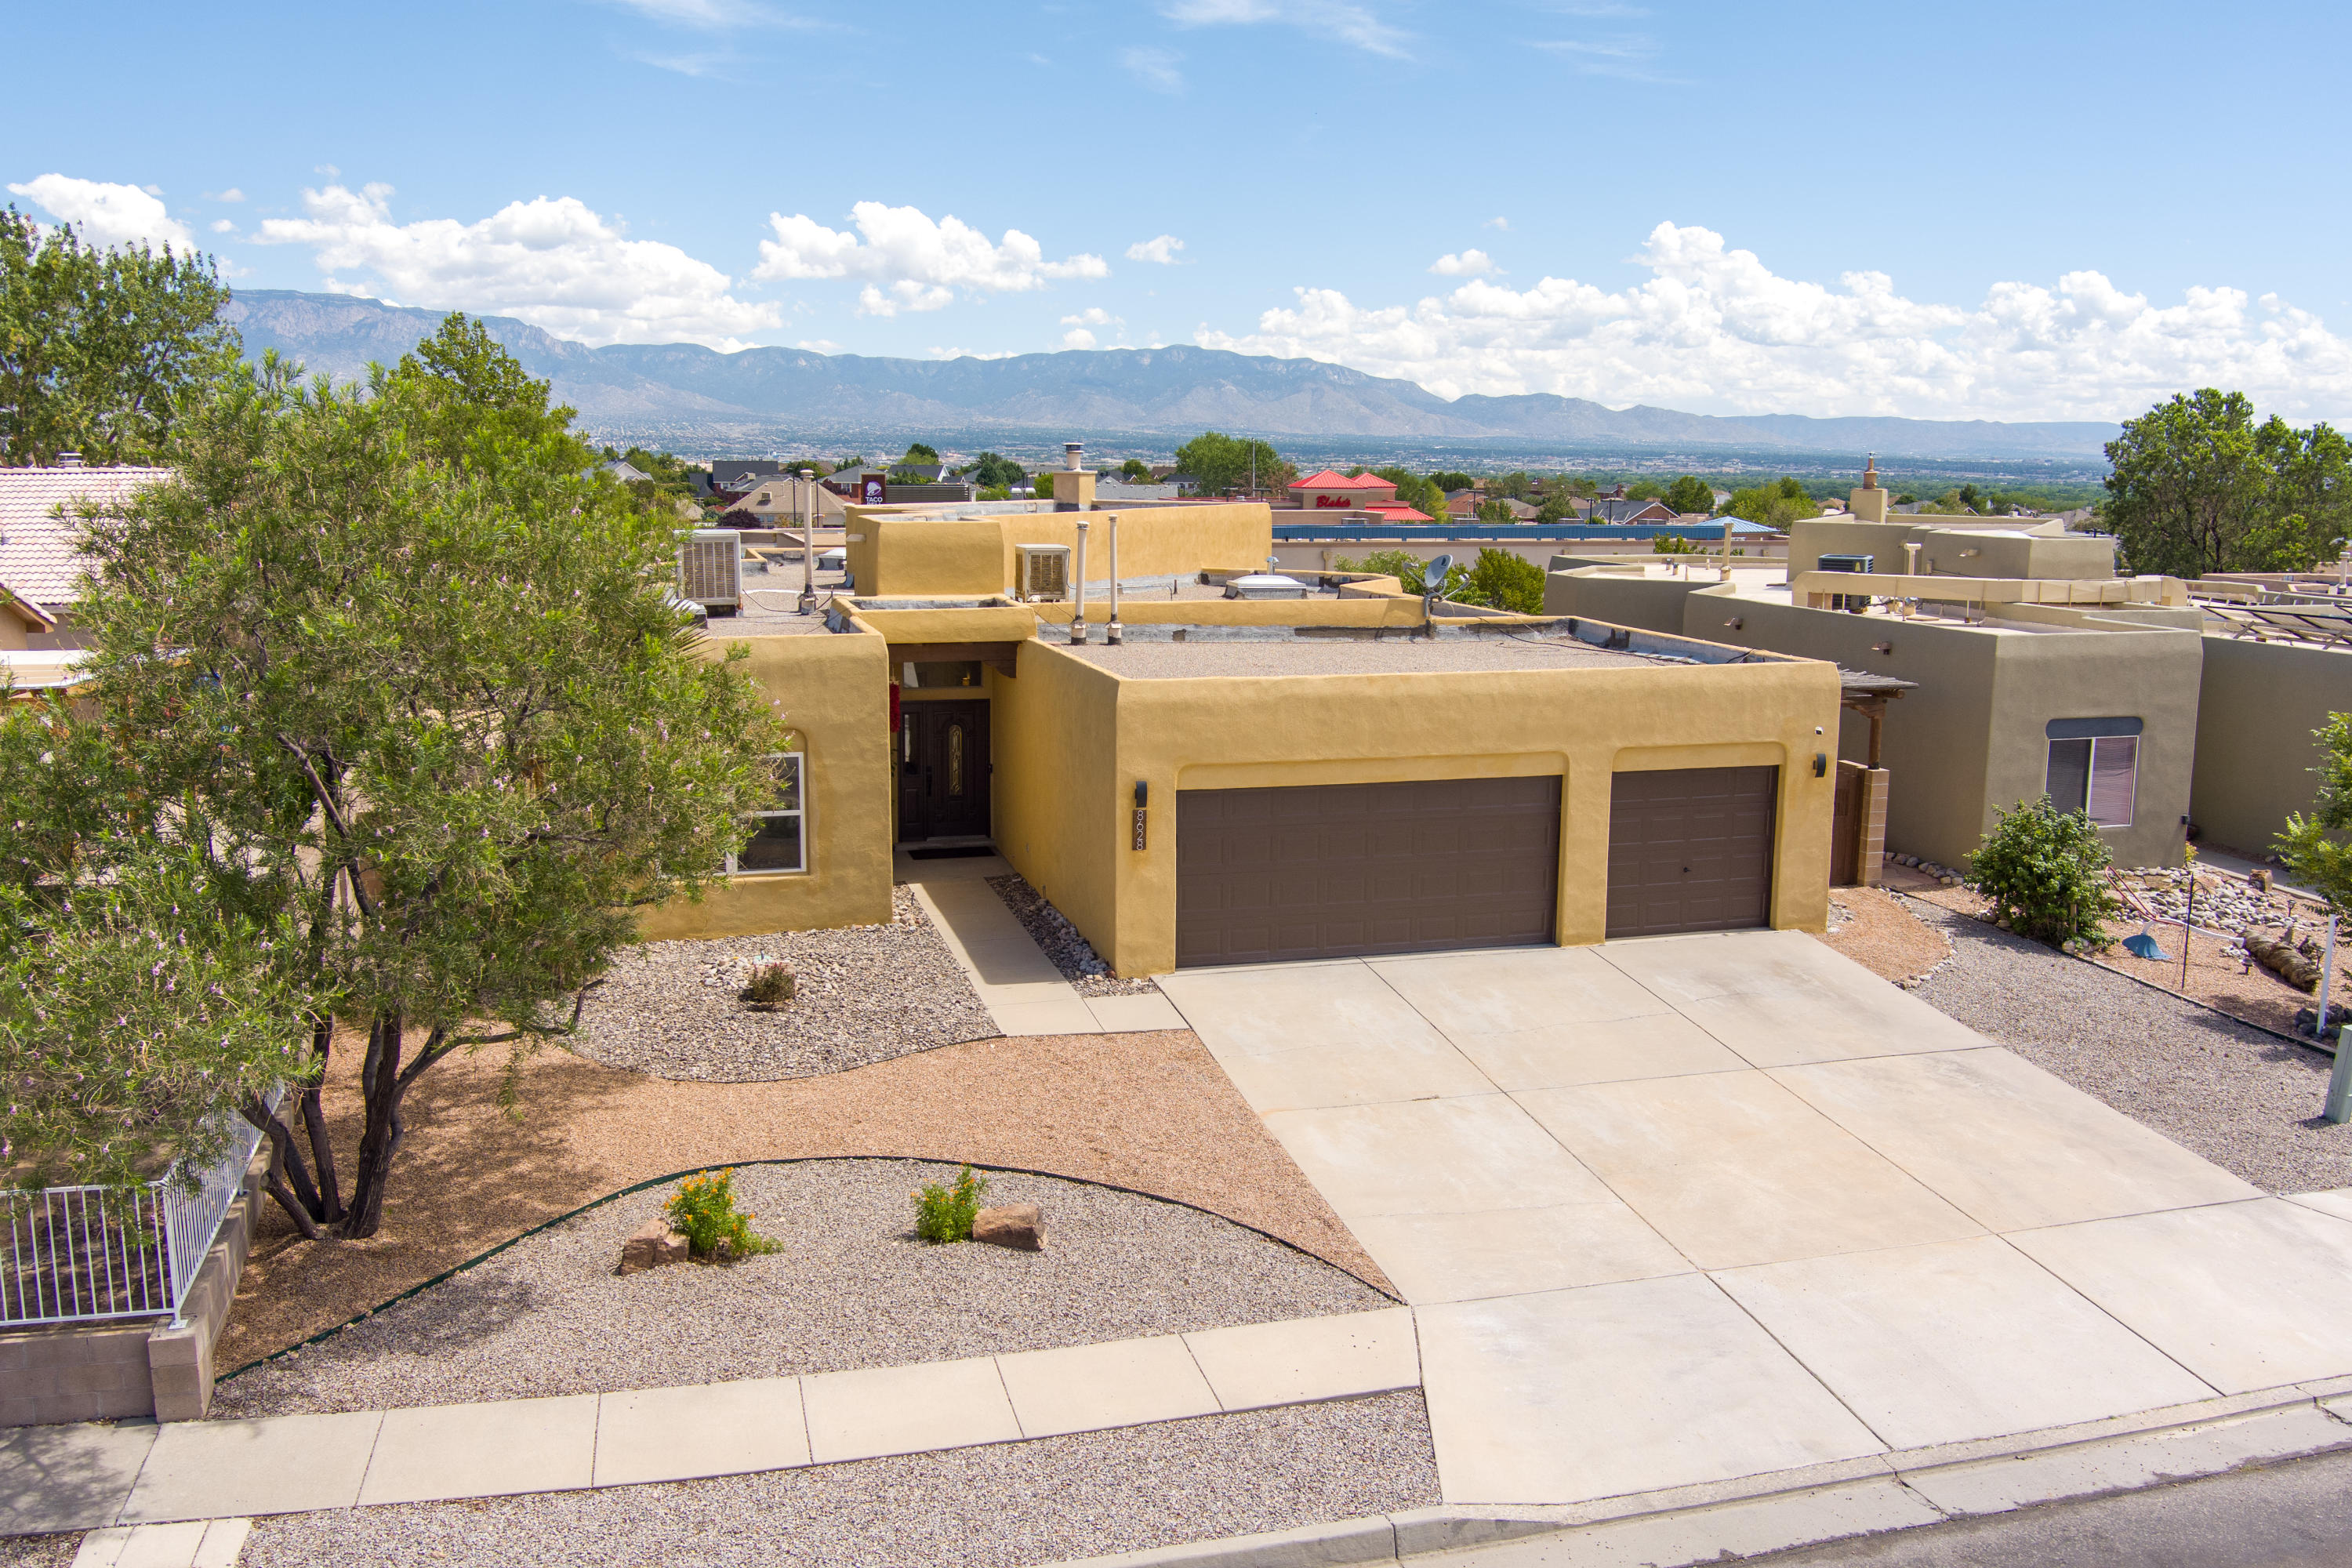 Welcome to this stunning 3 bedroom, two bathroom, three car garage home with unobstructed mountain views! Conveniently located near Paseo Del Norte on a cul de-sac in the highly sought after Piedras Marcadas, with private access to Petroglyph trails and a wonderful park. Features vaulted ceilings, skylights, hand made vigas and a wood burning kiva fireplace. Oak floors, modern lighting, updated cabinets and granite countertops complete the modern southwest design. The master suite features a gas fireplace and gorgeous custom walk-in closet by California Closets. The updated kitchen features a gas range, stainless appliances and tons of storage. This combination of fantastic location and tasteful design won't last long!